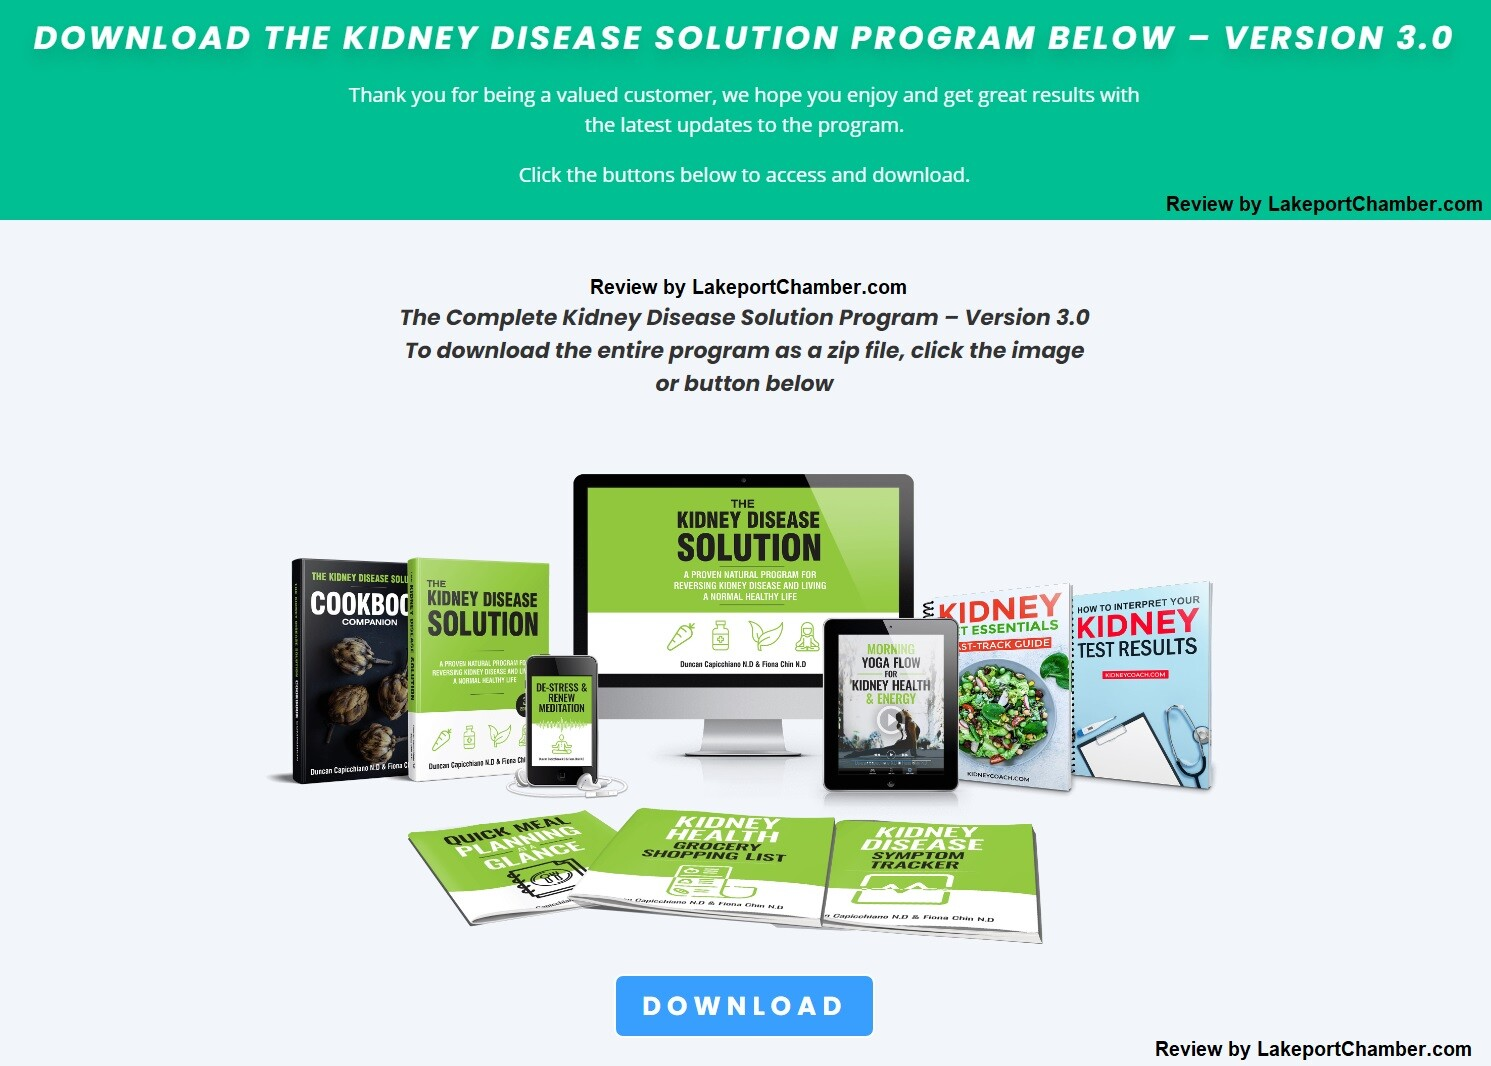 The Kidney Disease Solution Download Page